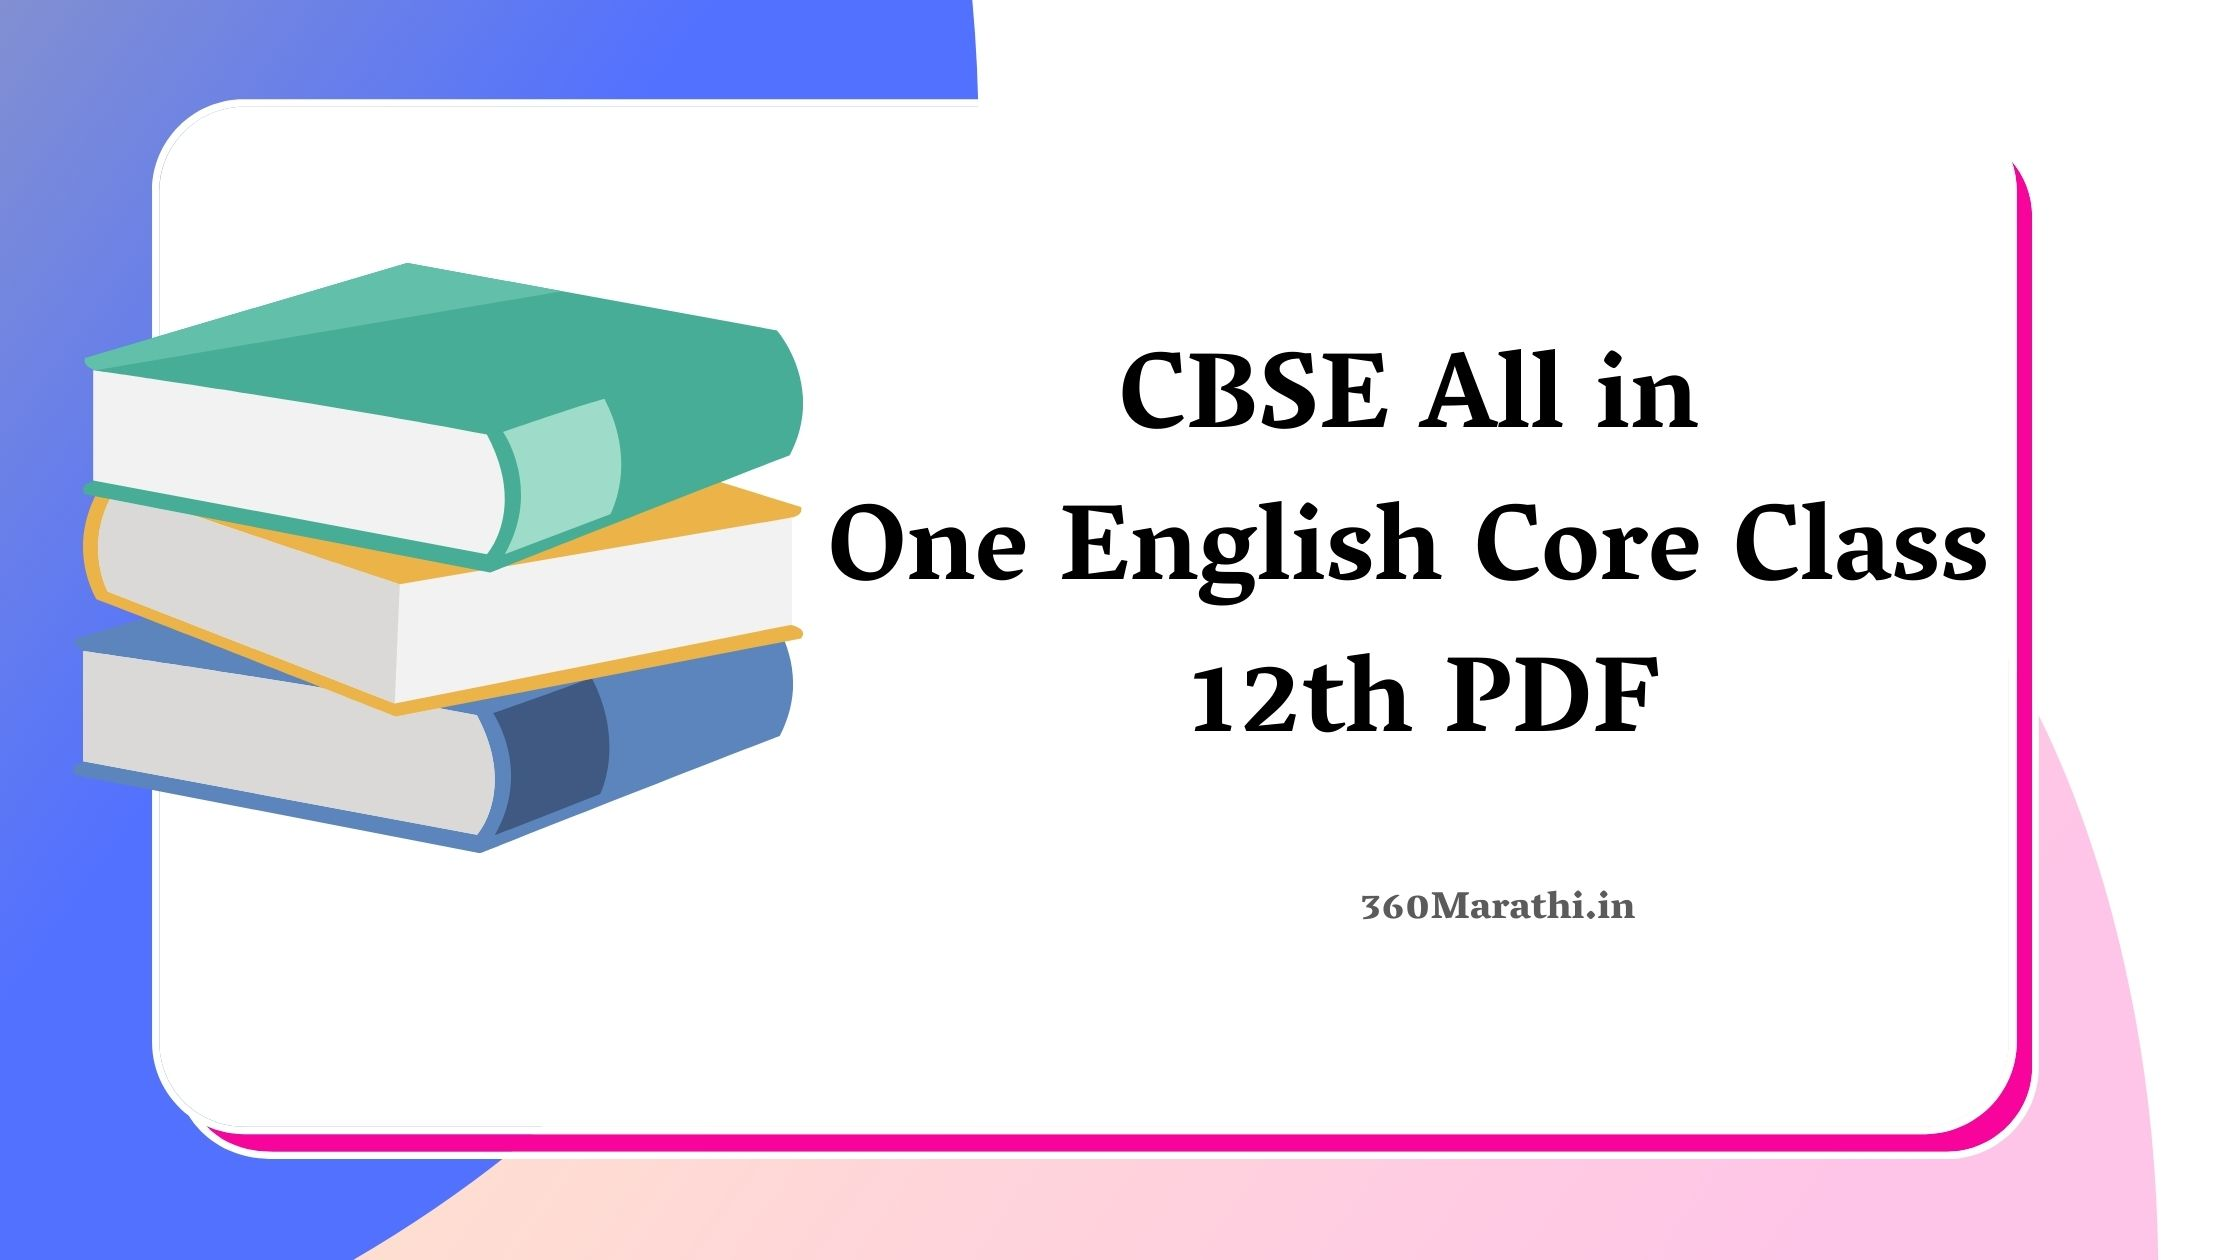 CBSE All in One English Core Class 12th PDF